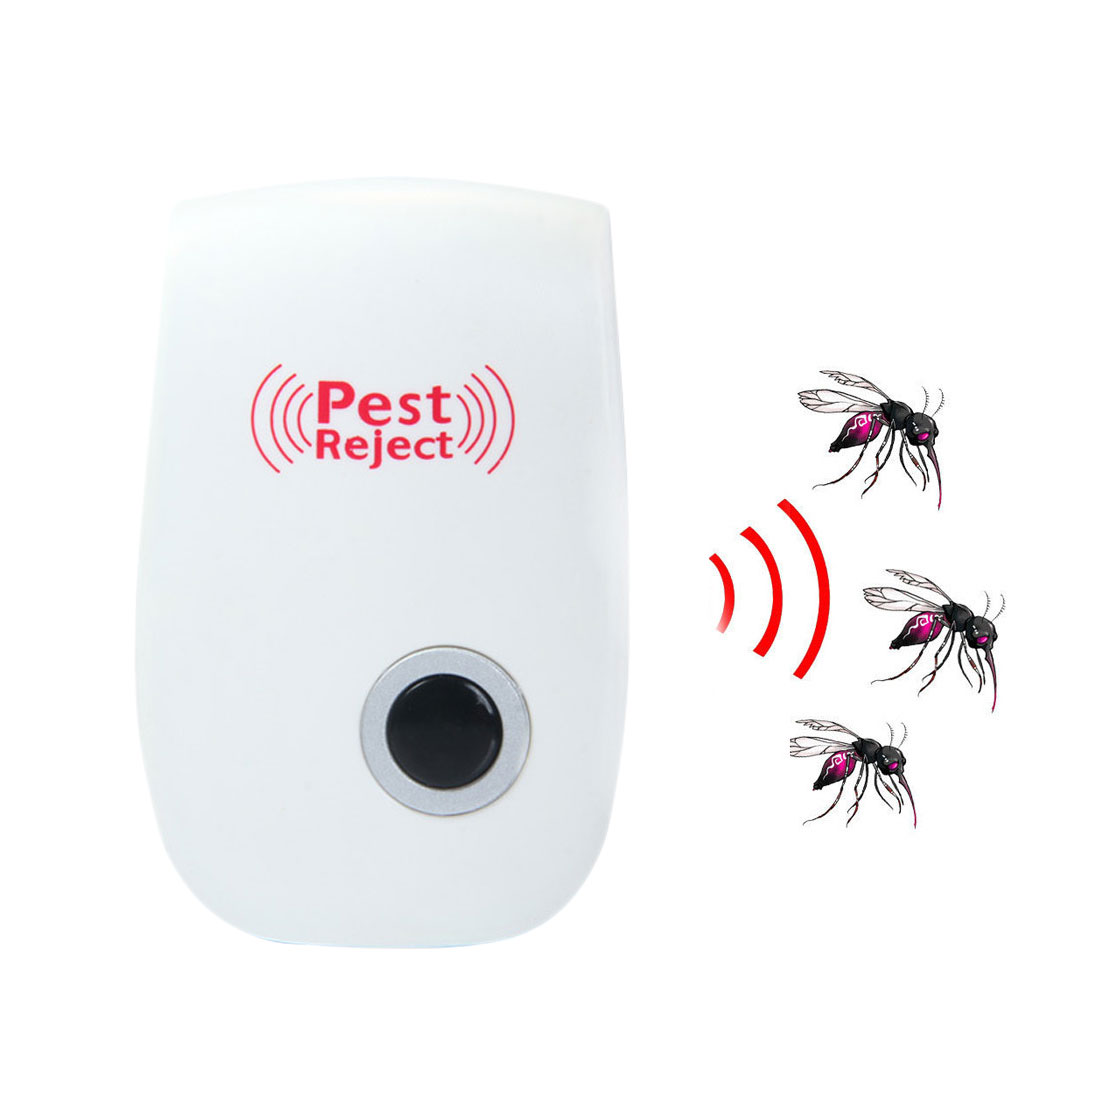 Useful Mosquito Killer Electronic Multi-Purpose Ultrasonic Pest Repeller Reject Rat Mouse Repellent Anti Rodent Bug Reject Ect